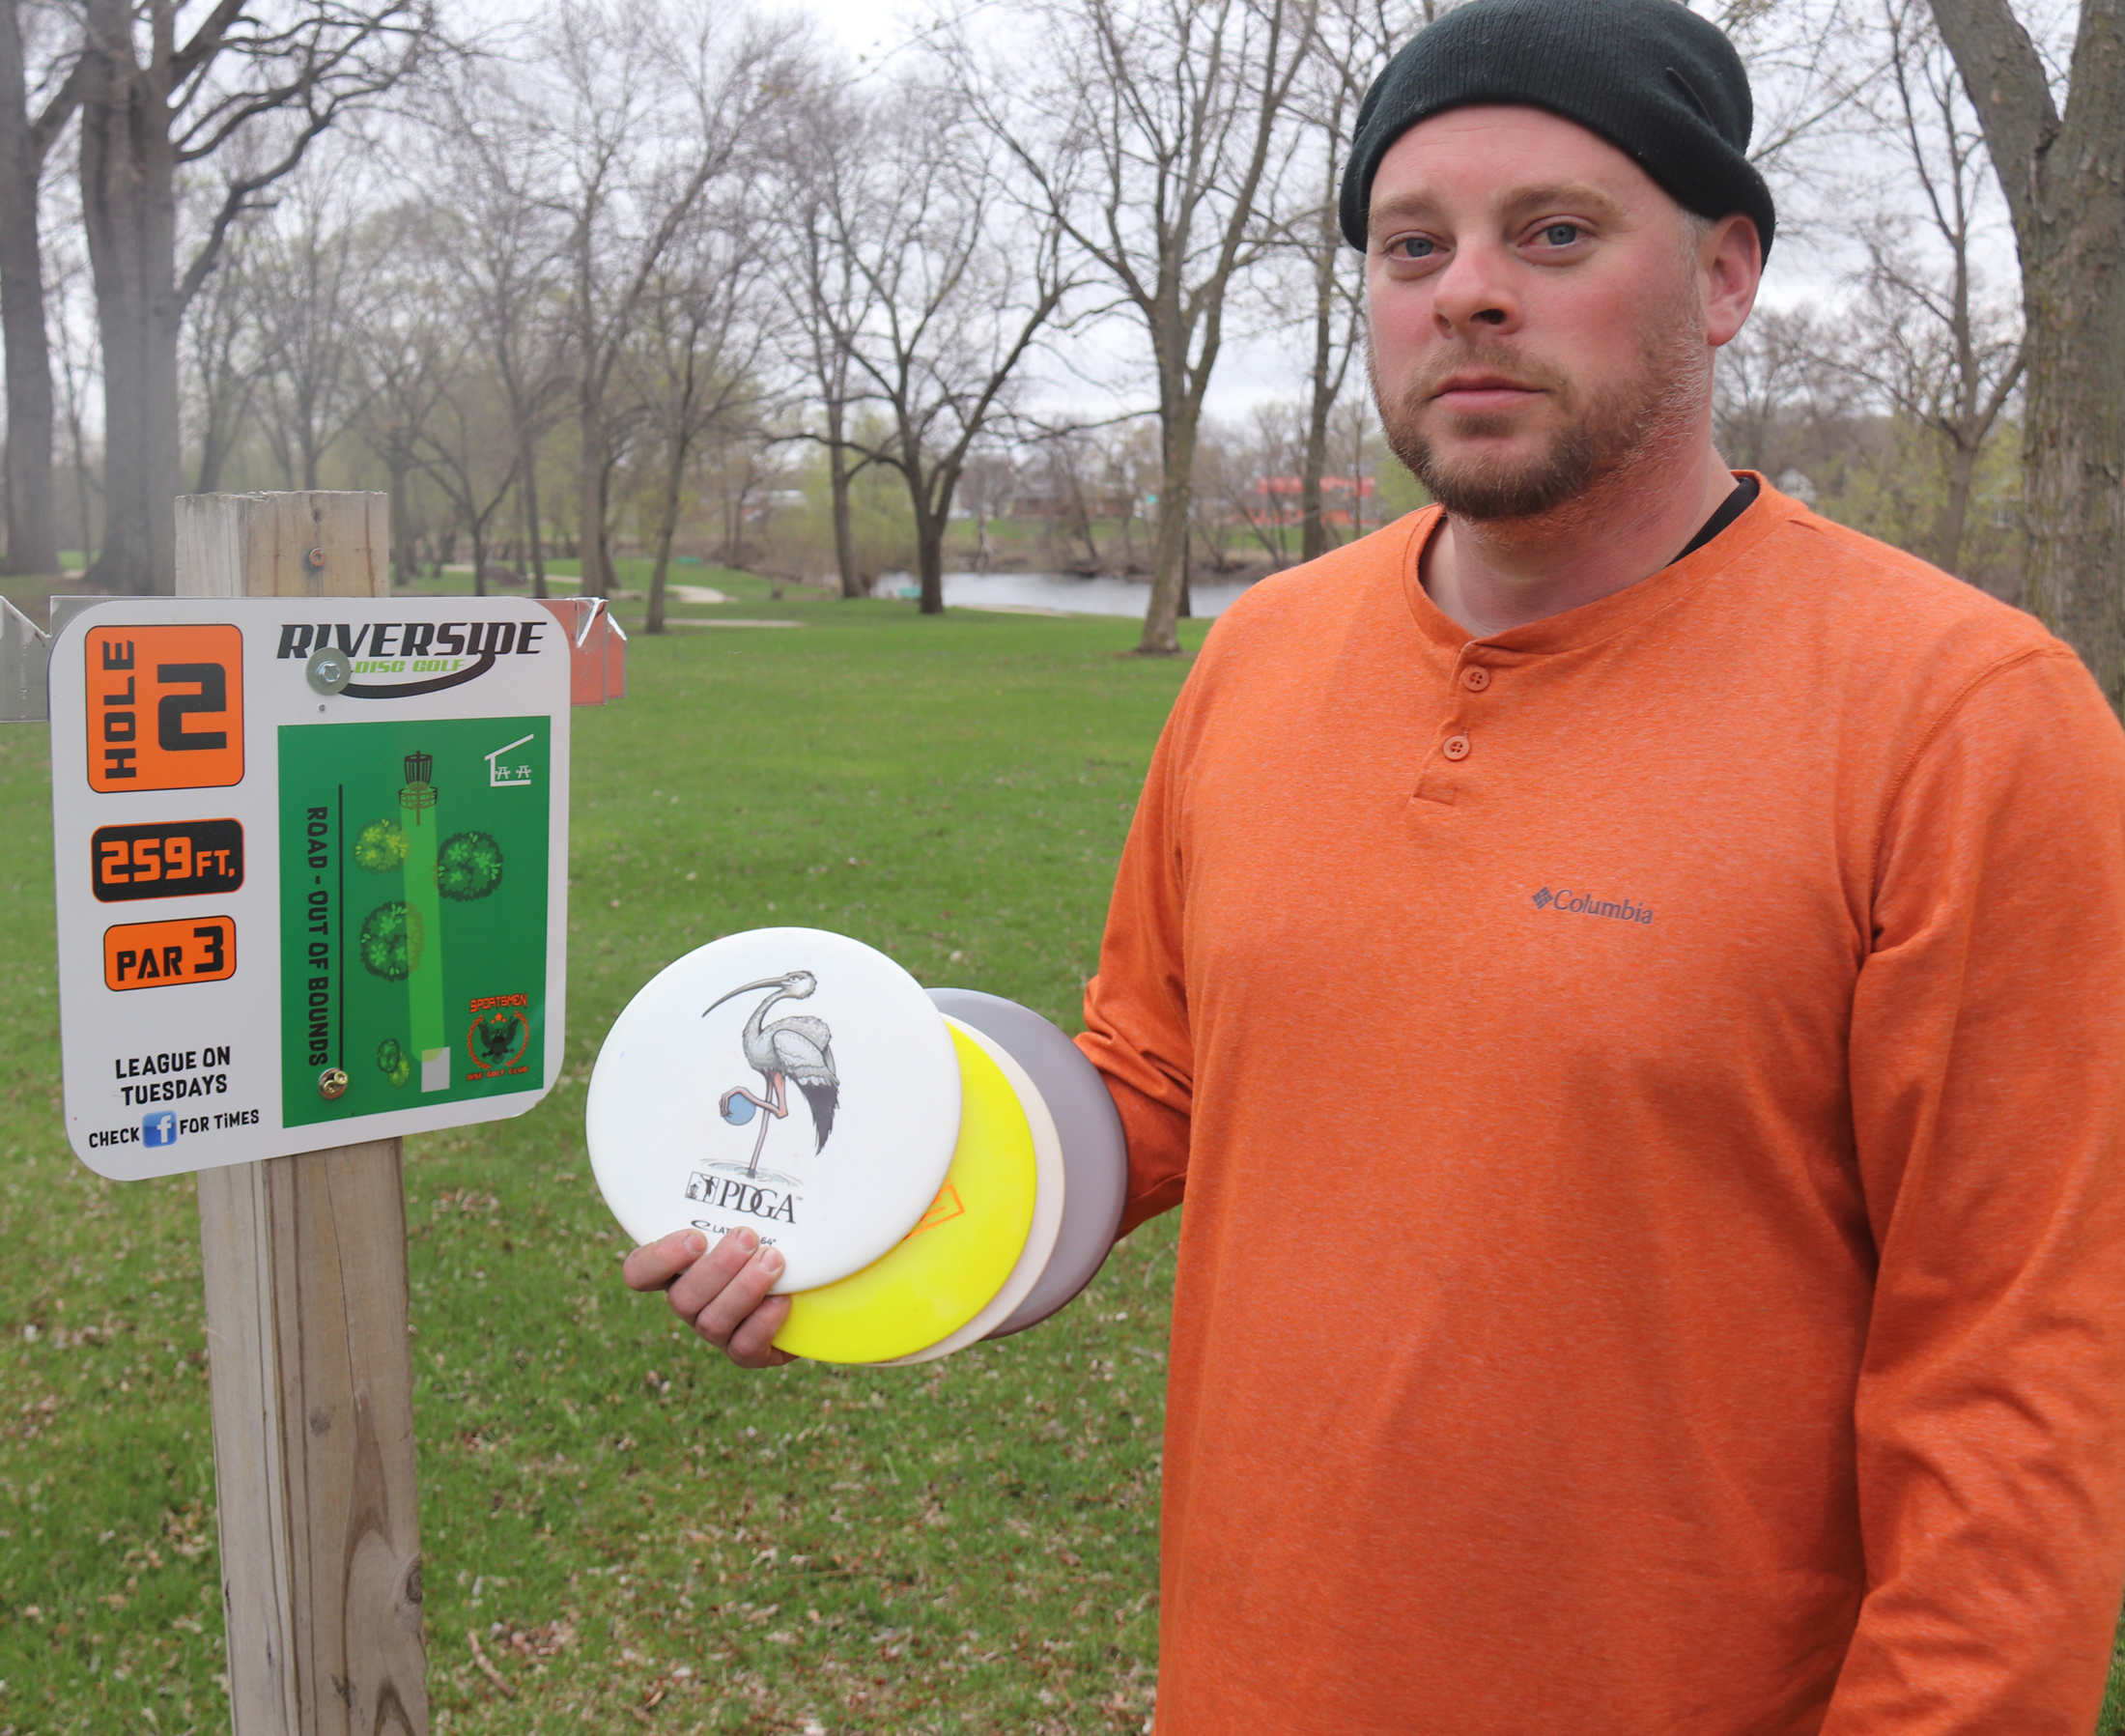 With disc golf getting more popular, Sportsmen's League growing, local tournaments planned